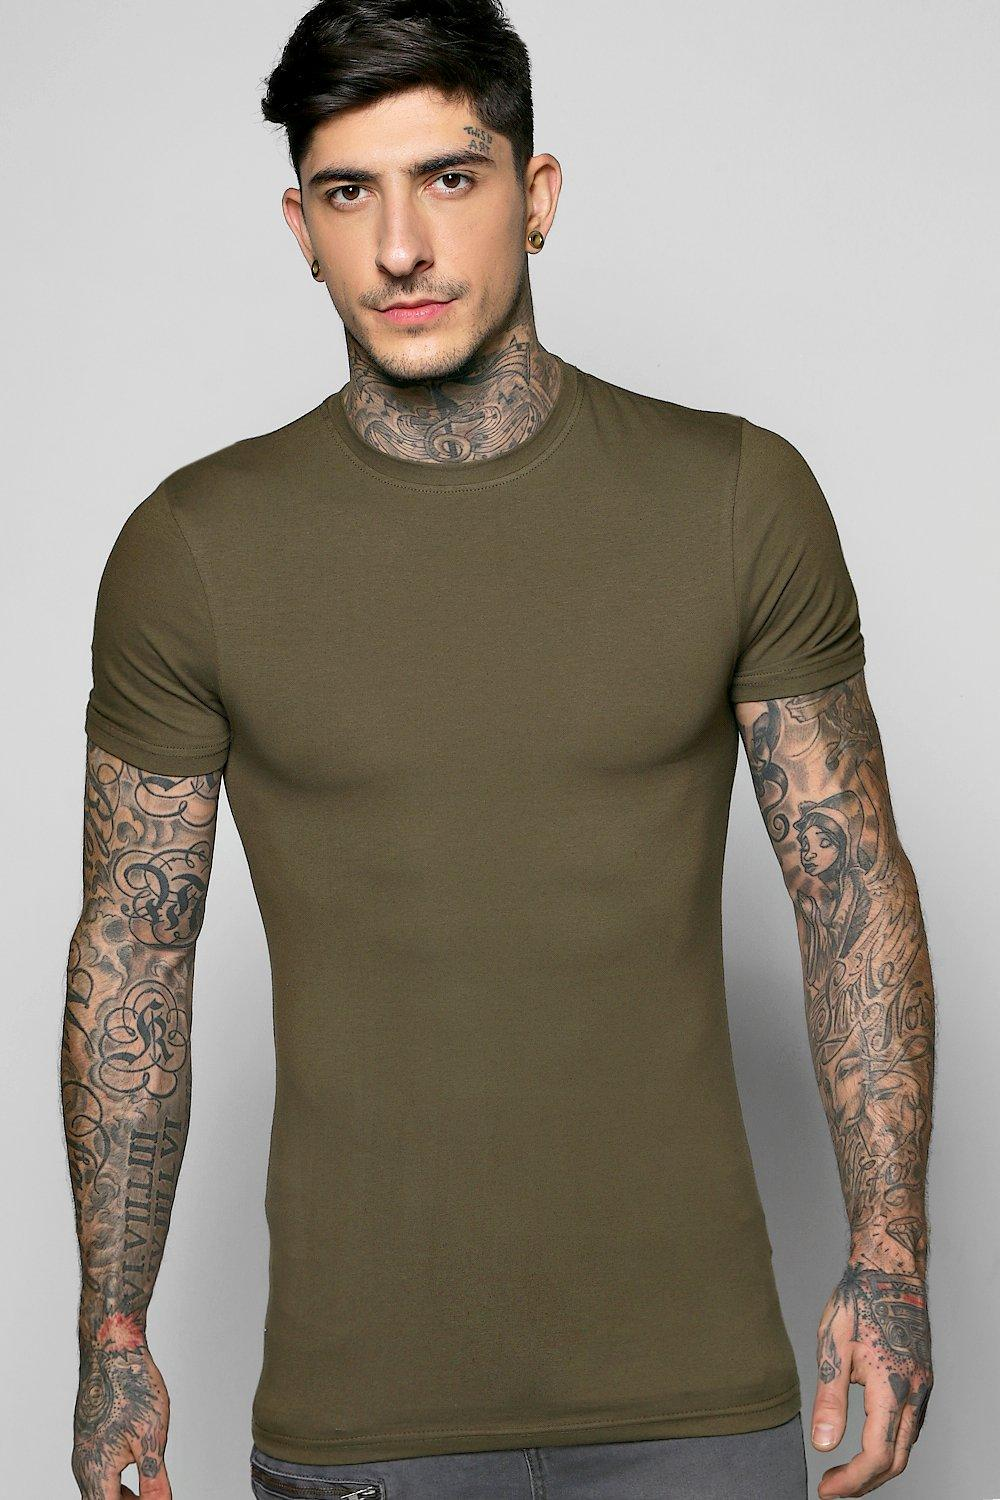 boohooMAN olive Muscle Fit Crew Neck T Shirt